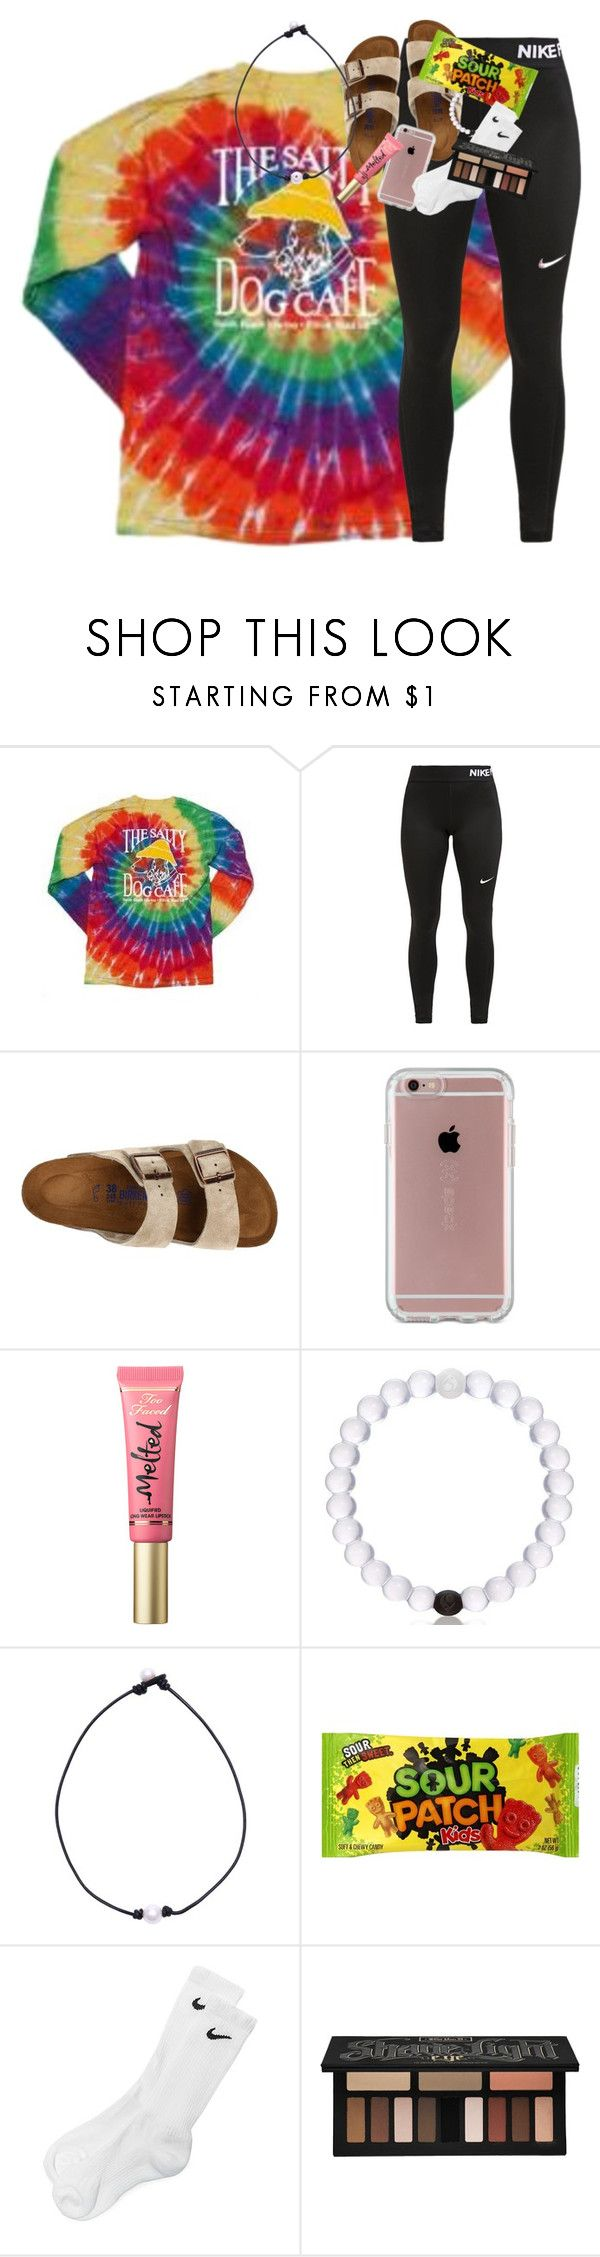 nike shoes haul in description!! by classynsouthern ❤ liked on Polyvore featuring NIKE, Birkenstock, Speck, Too Faced Cosmetics and Kat Von D